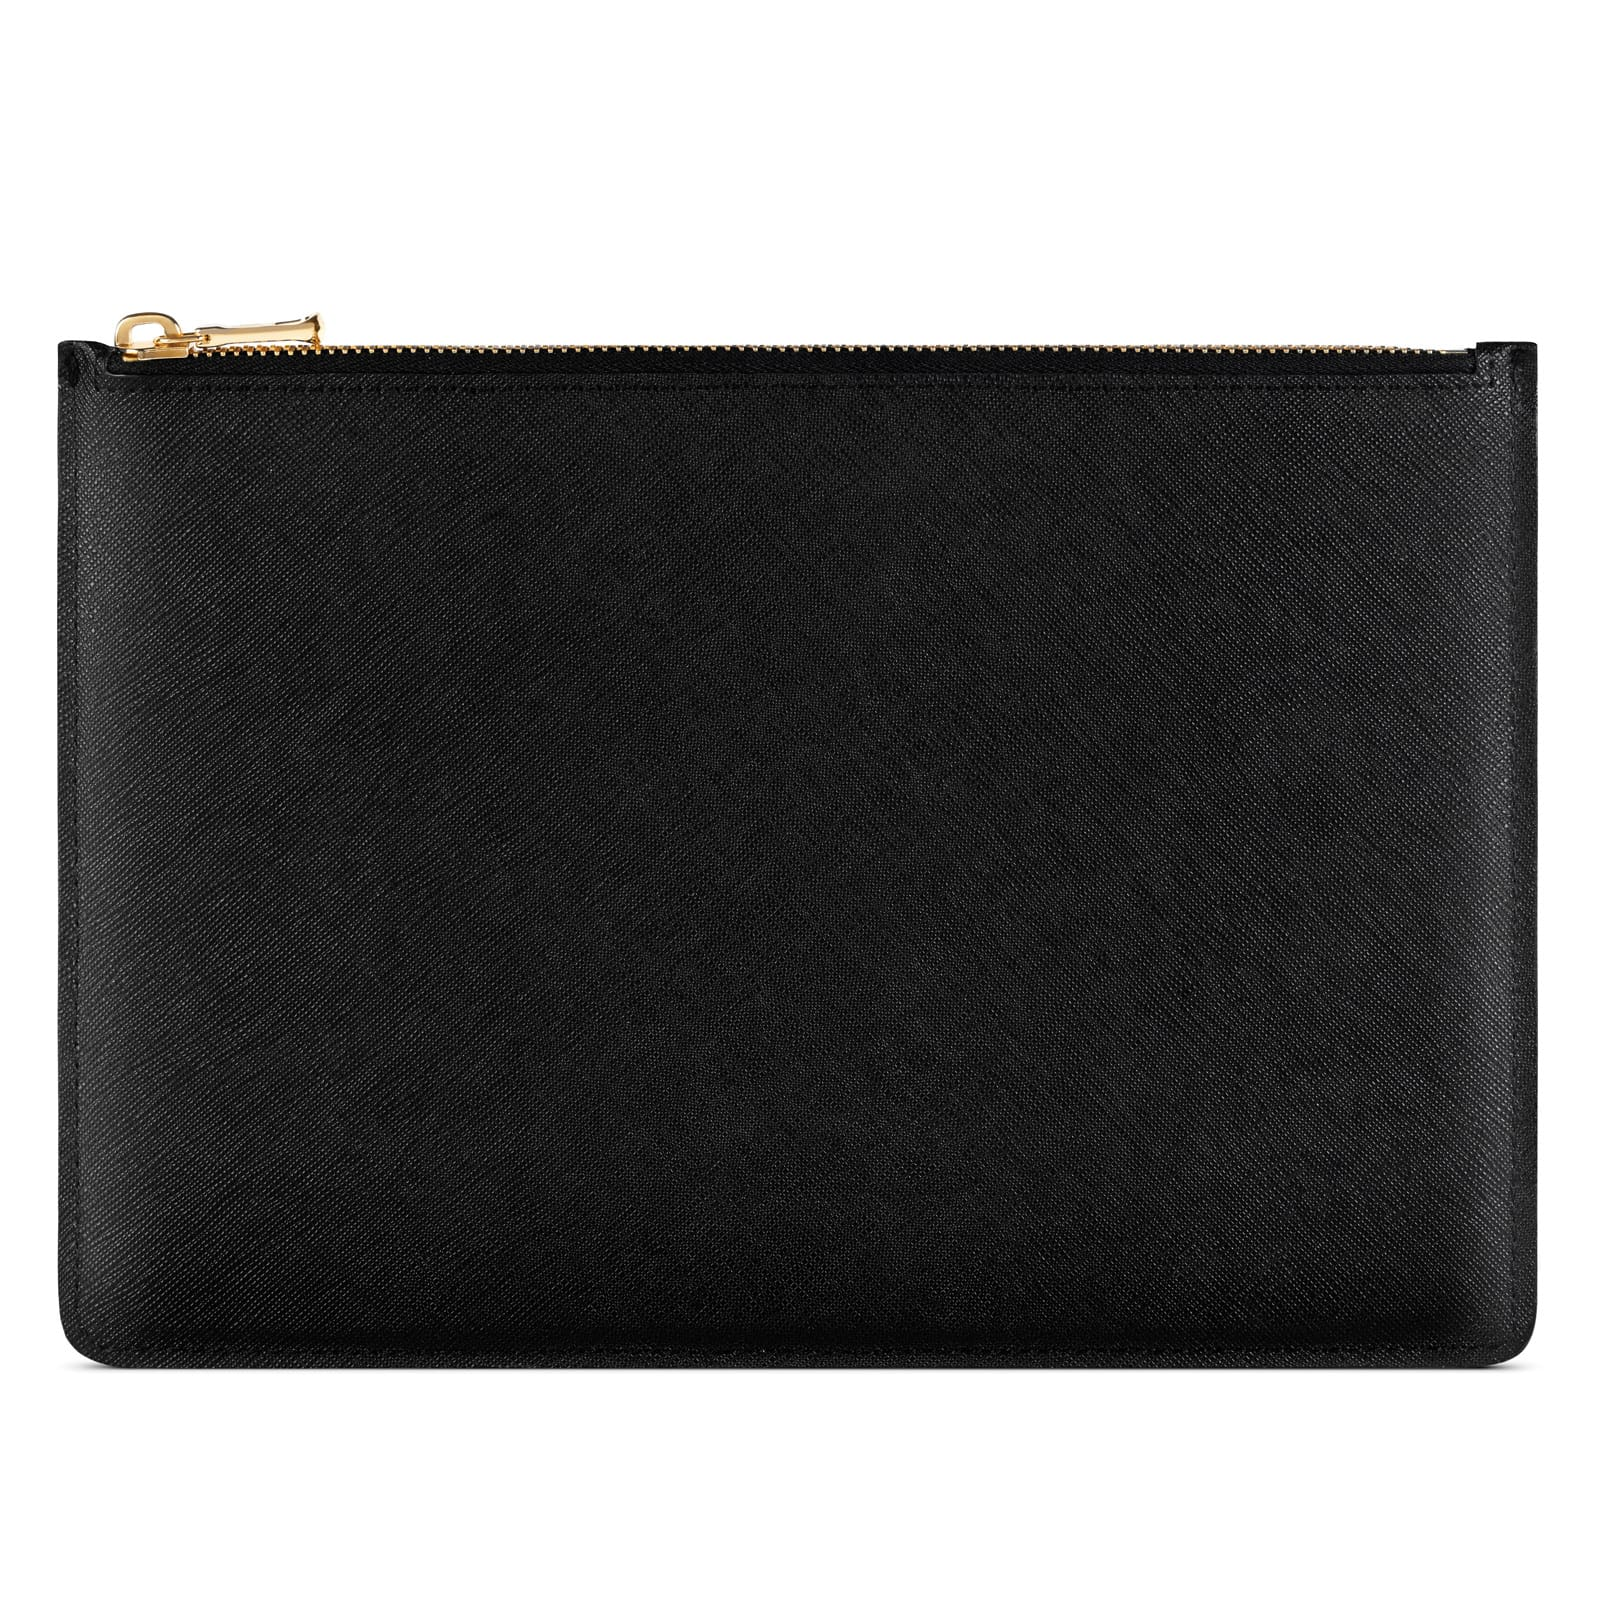 Blank Personalised Black Saffiano Leather Pouch